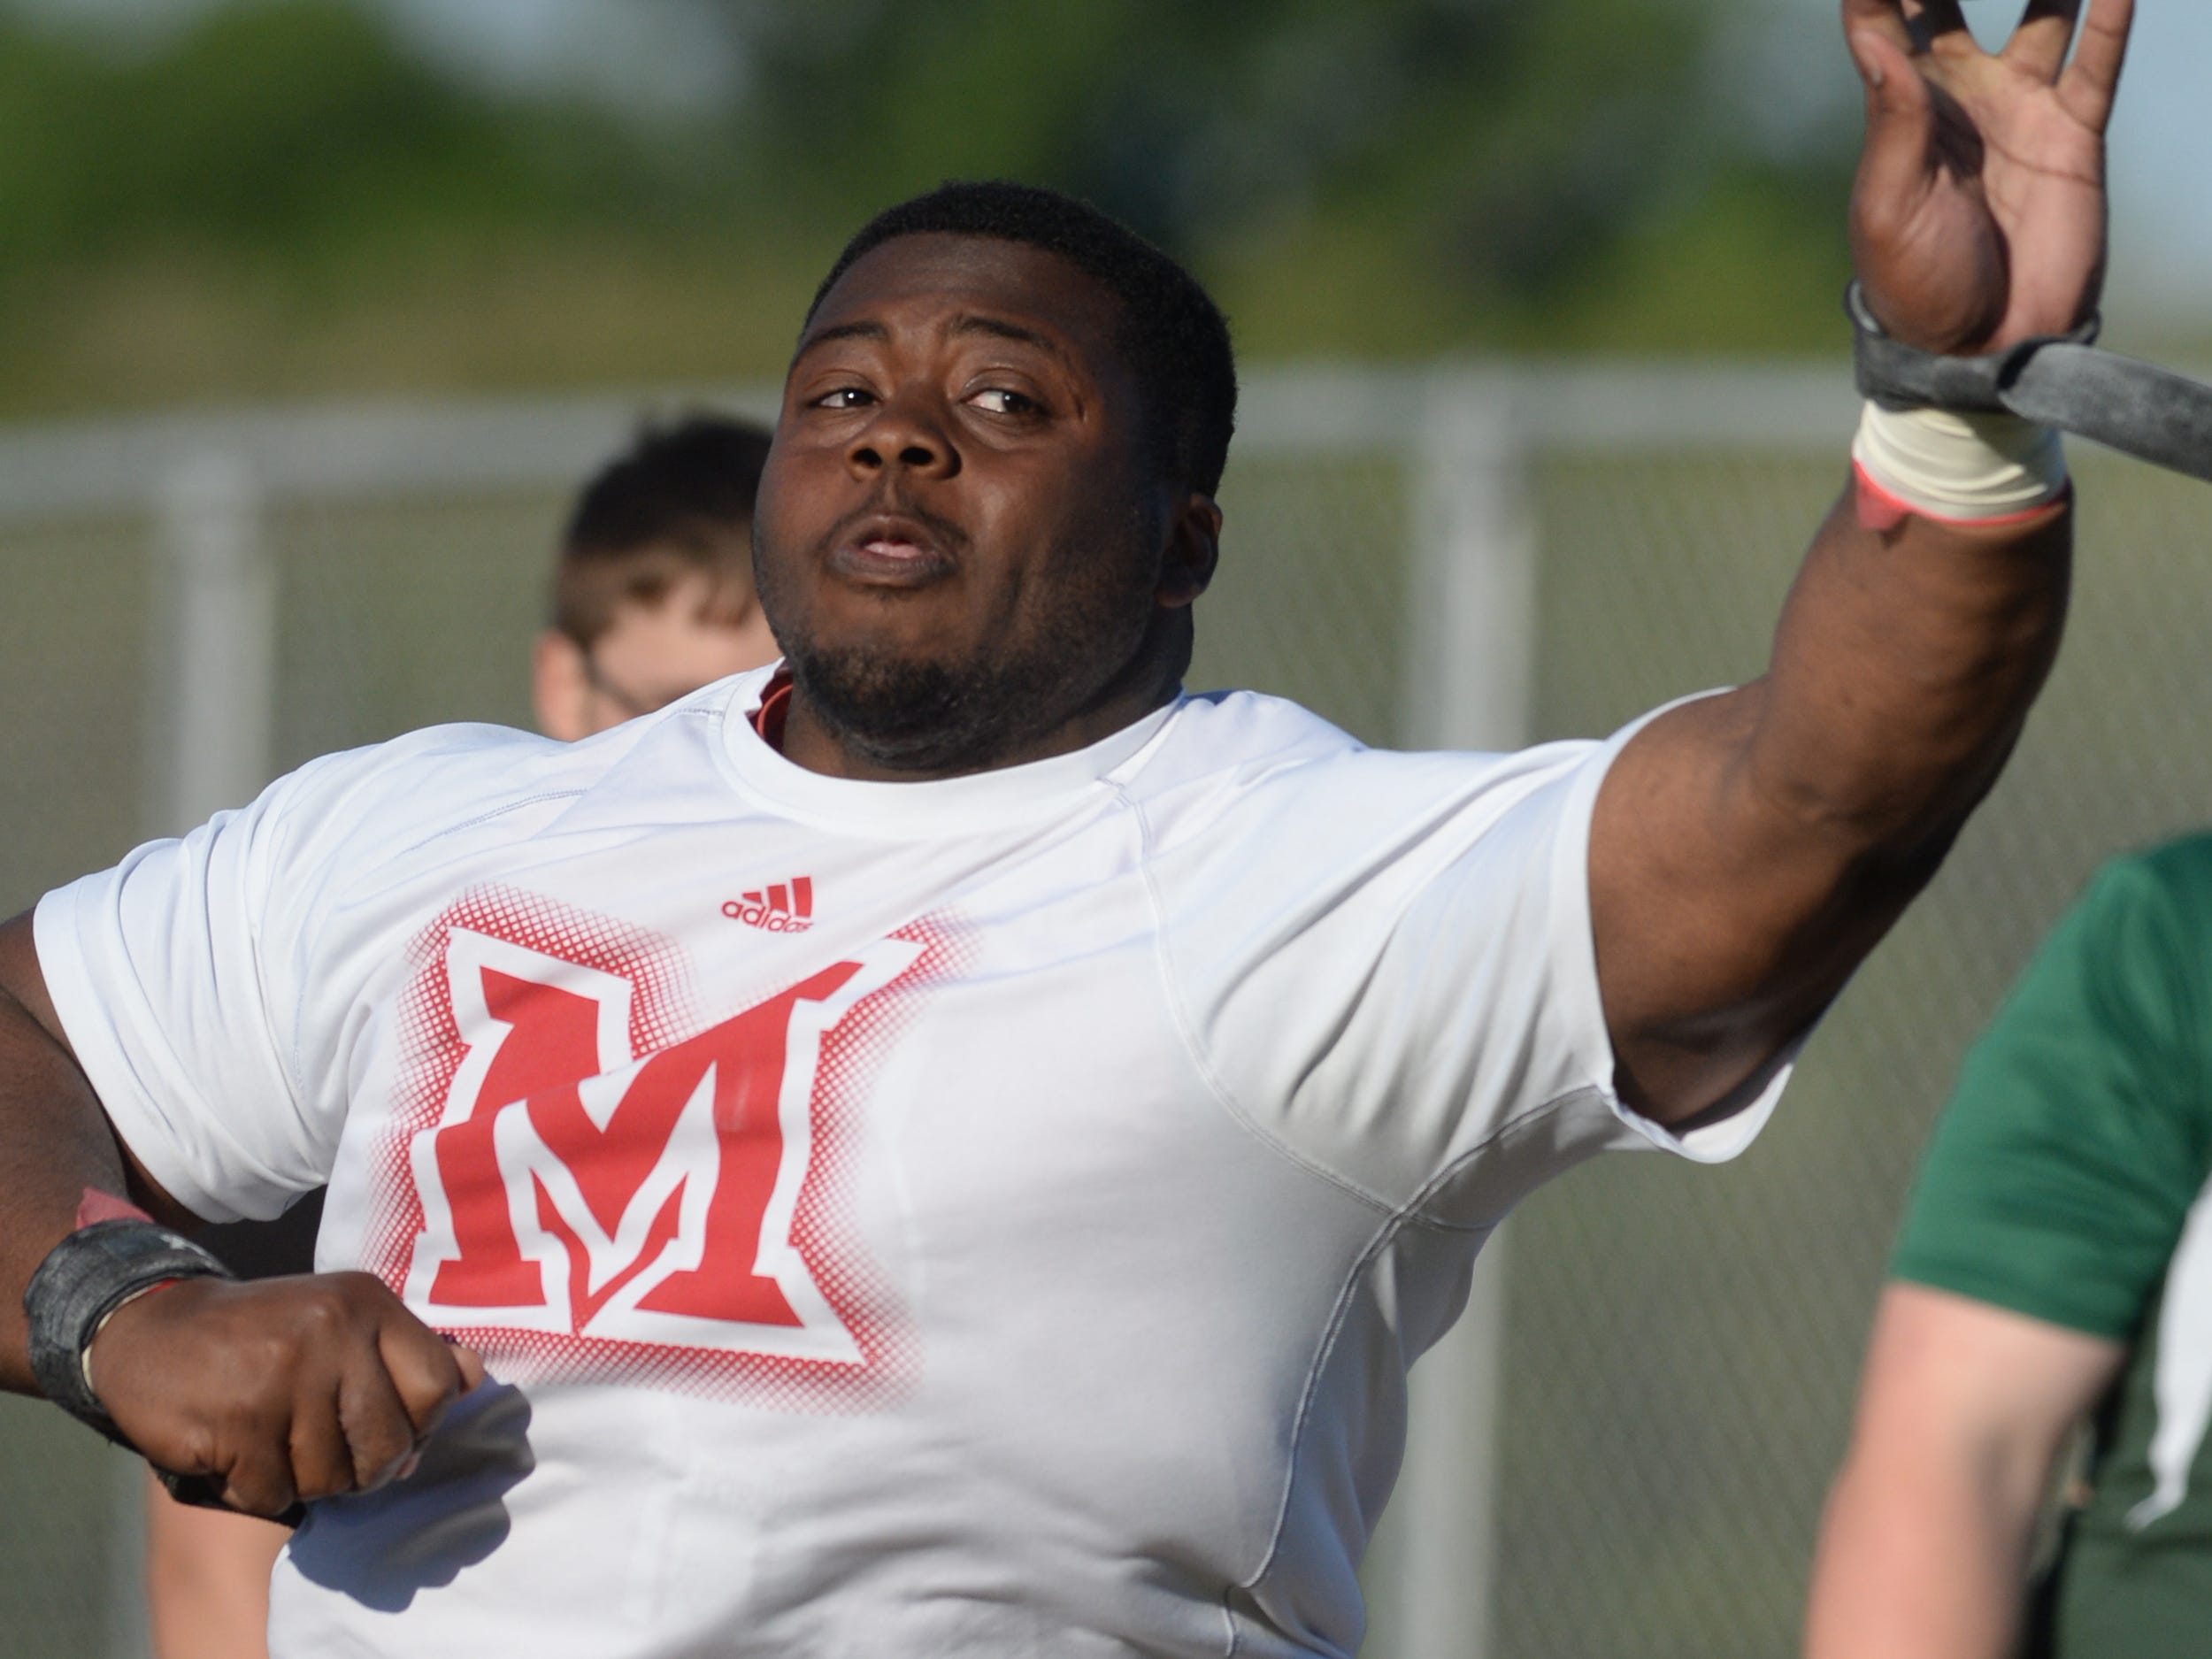 Richmond's Nathon Trawick warms up in shot put during the track and field sectional Thursday, May 21, 2015, at Connersville.